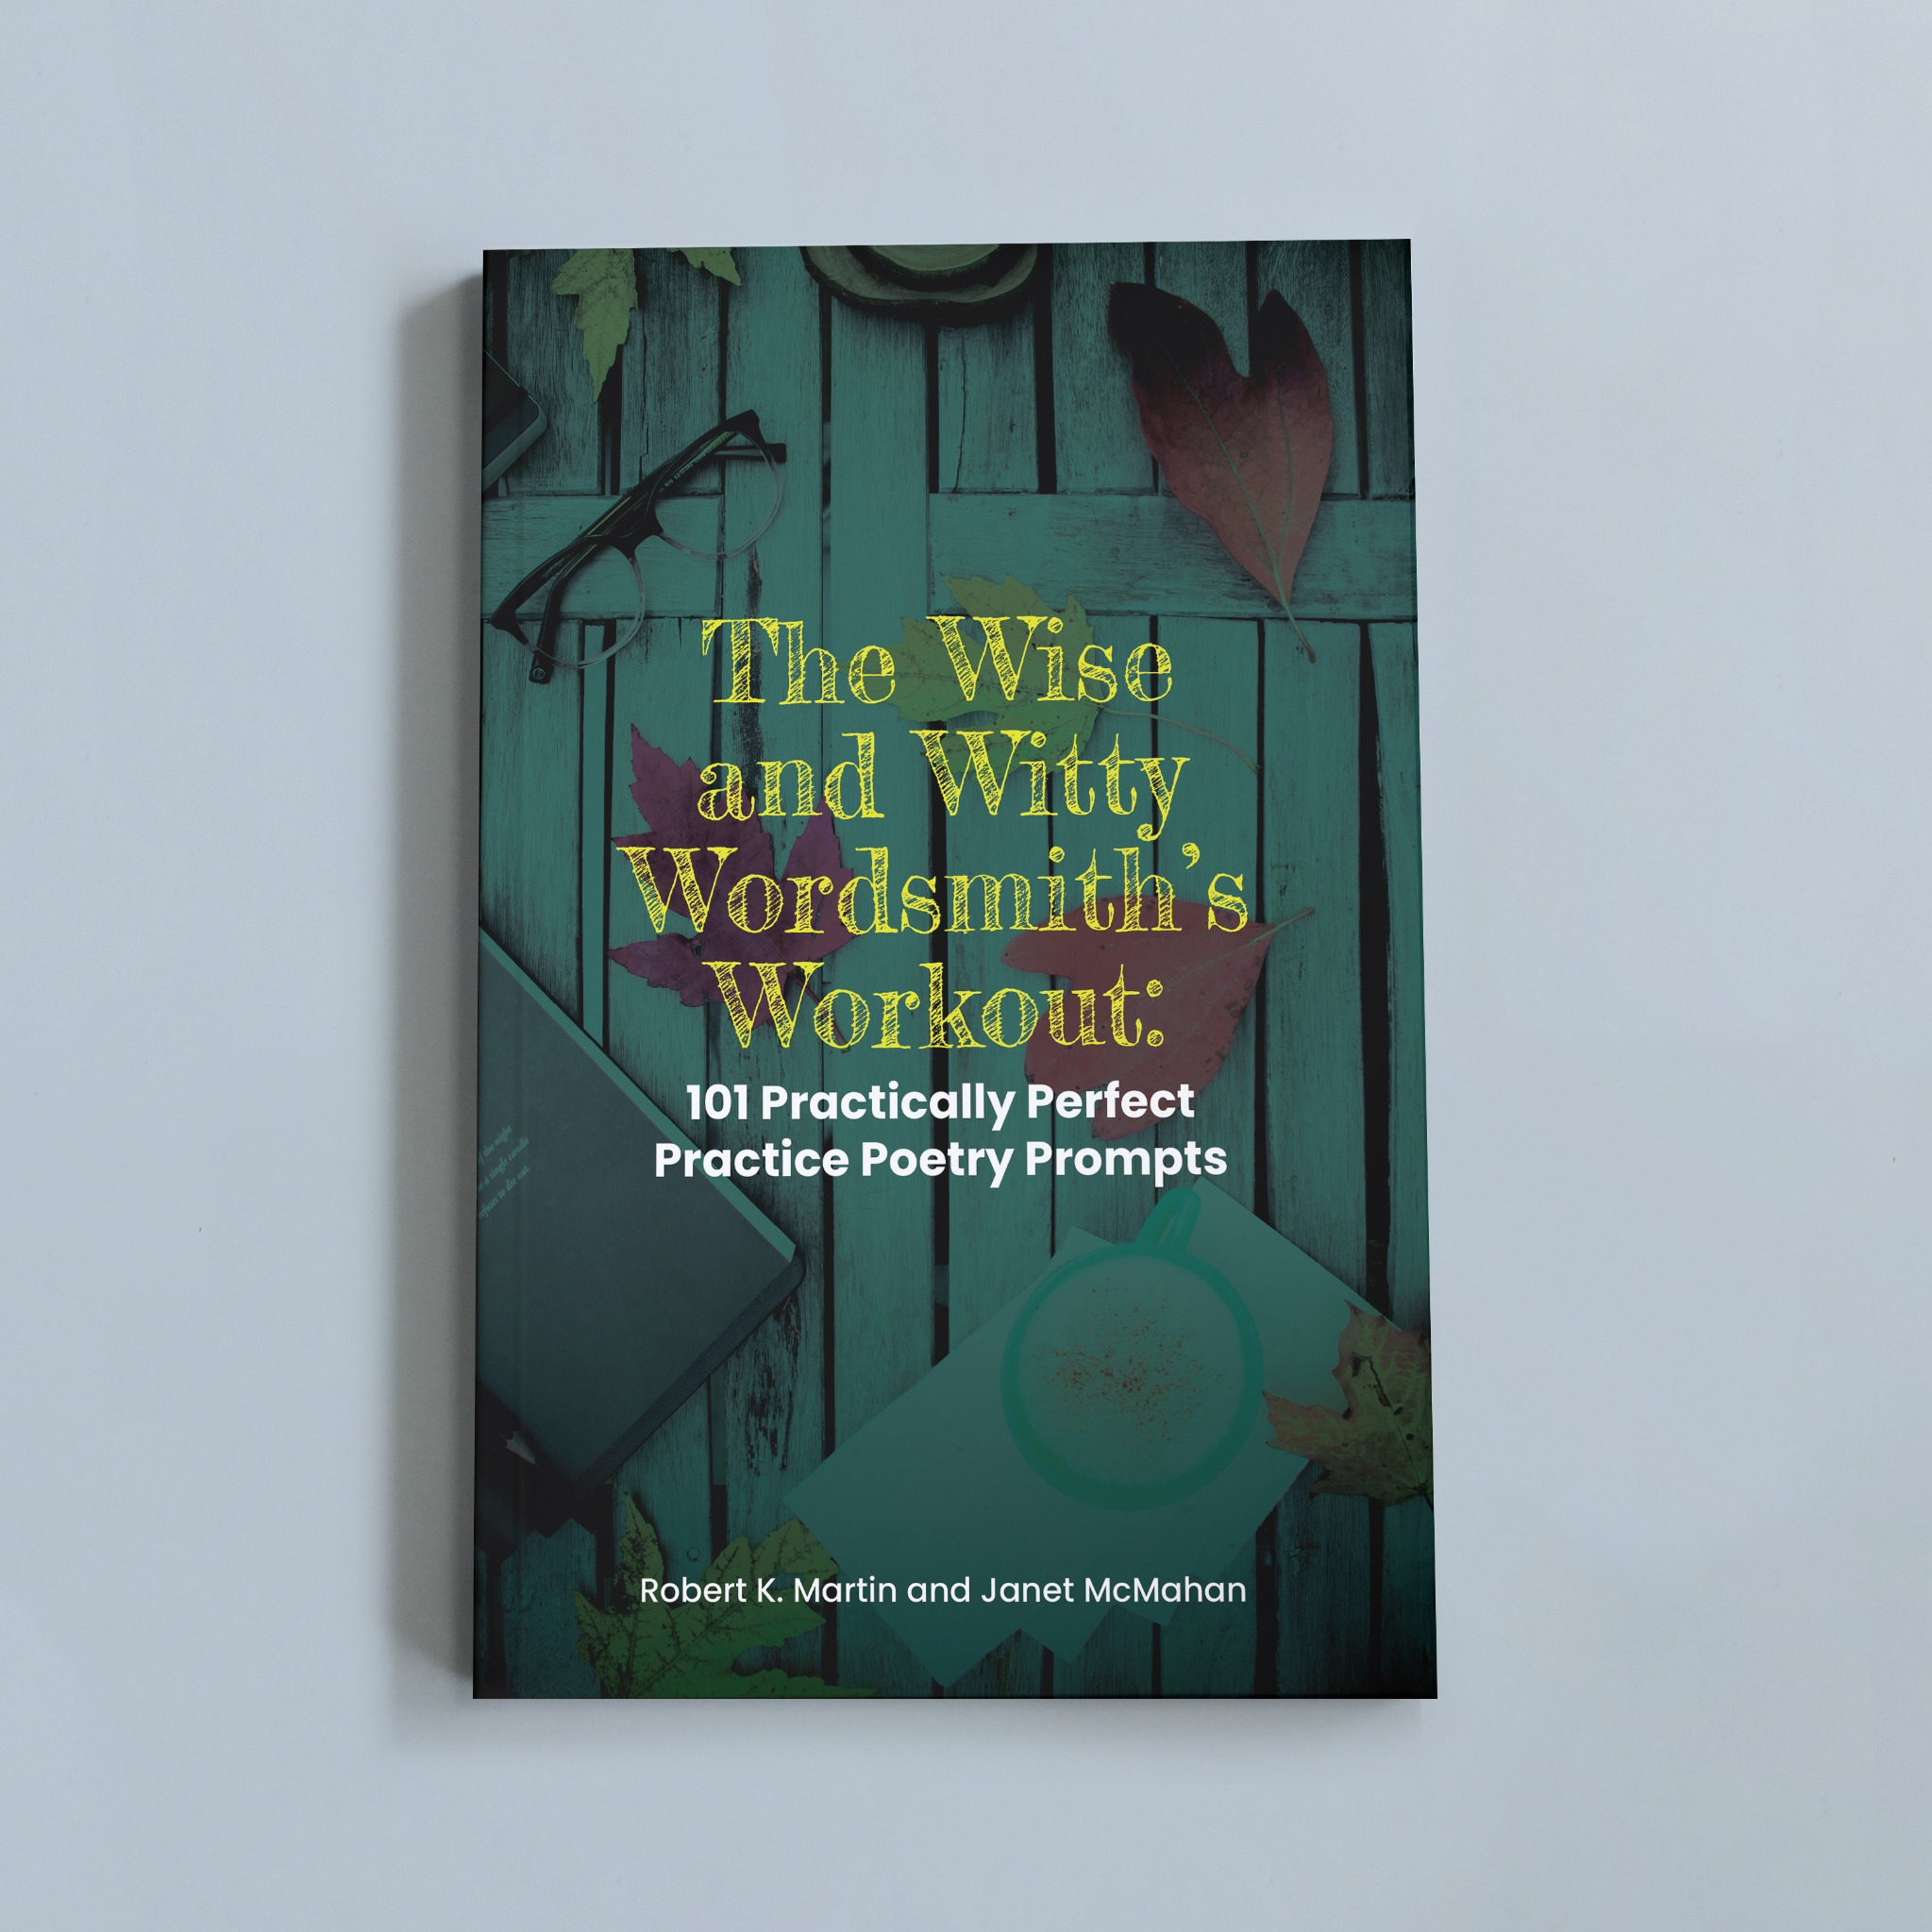 The Wise and Witty Wordsmith's Workout: 101 Practically Perfect Poetry Prompts